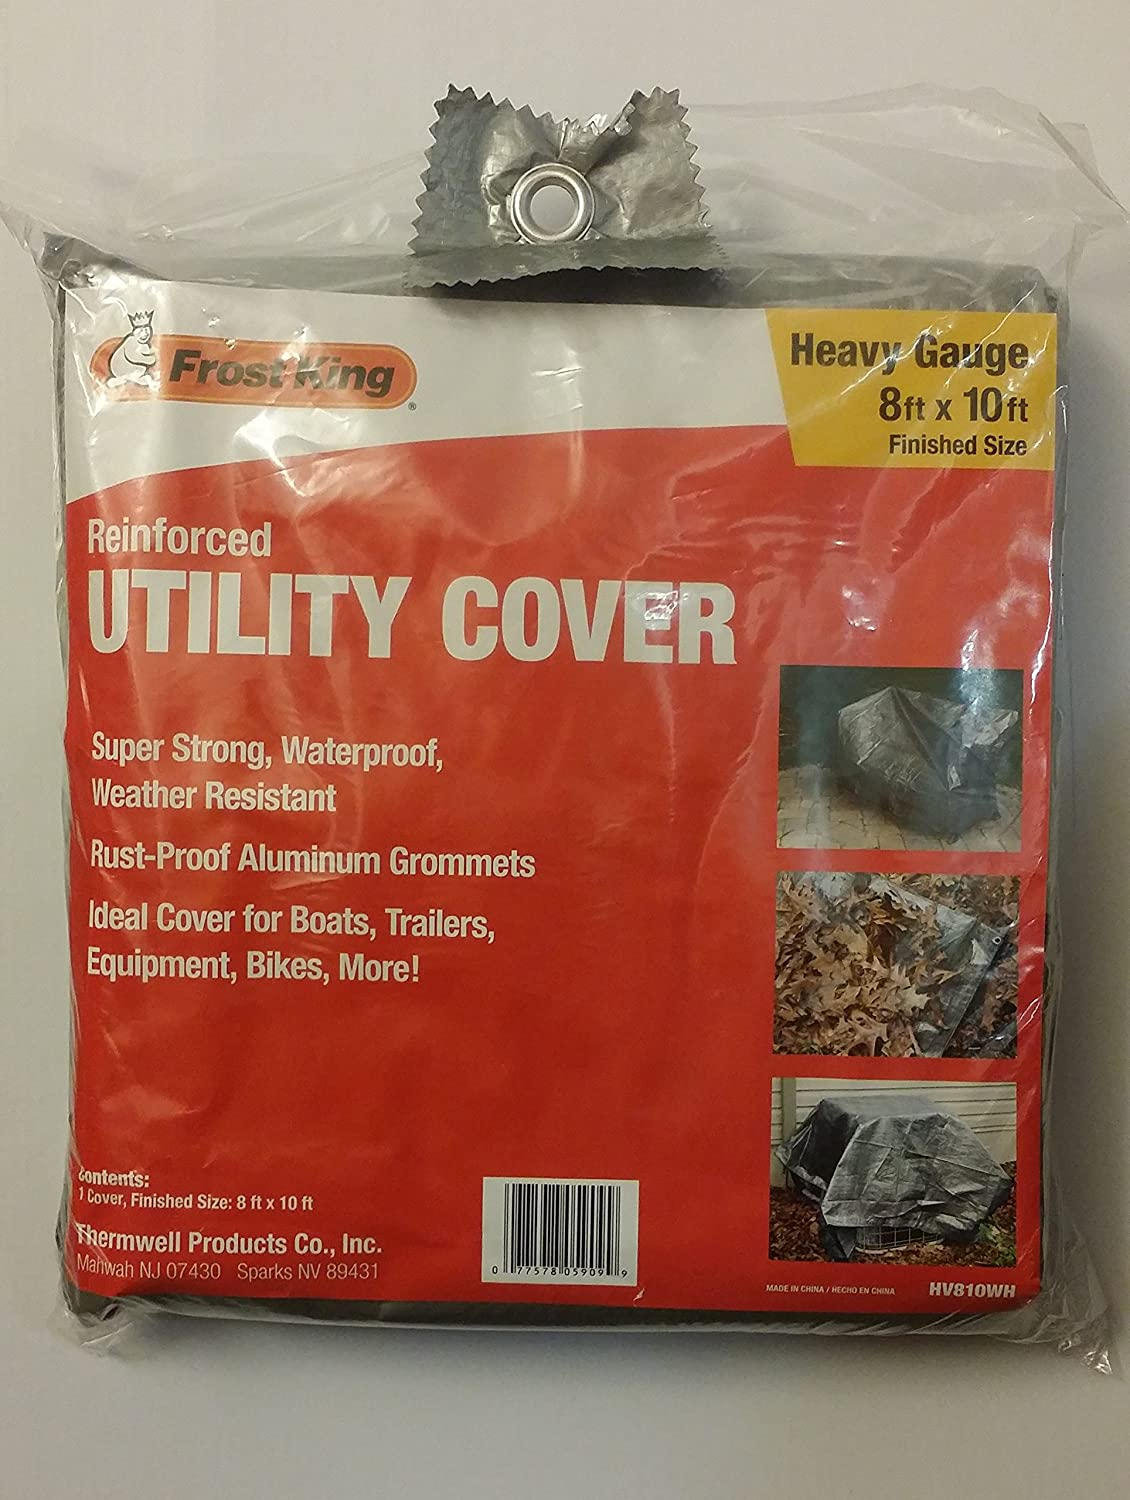 Tarp Thermwell Products Co Inc HV810WH Frost King Reinforced Utility Cover Grey, 8 ft by 10 ft